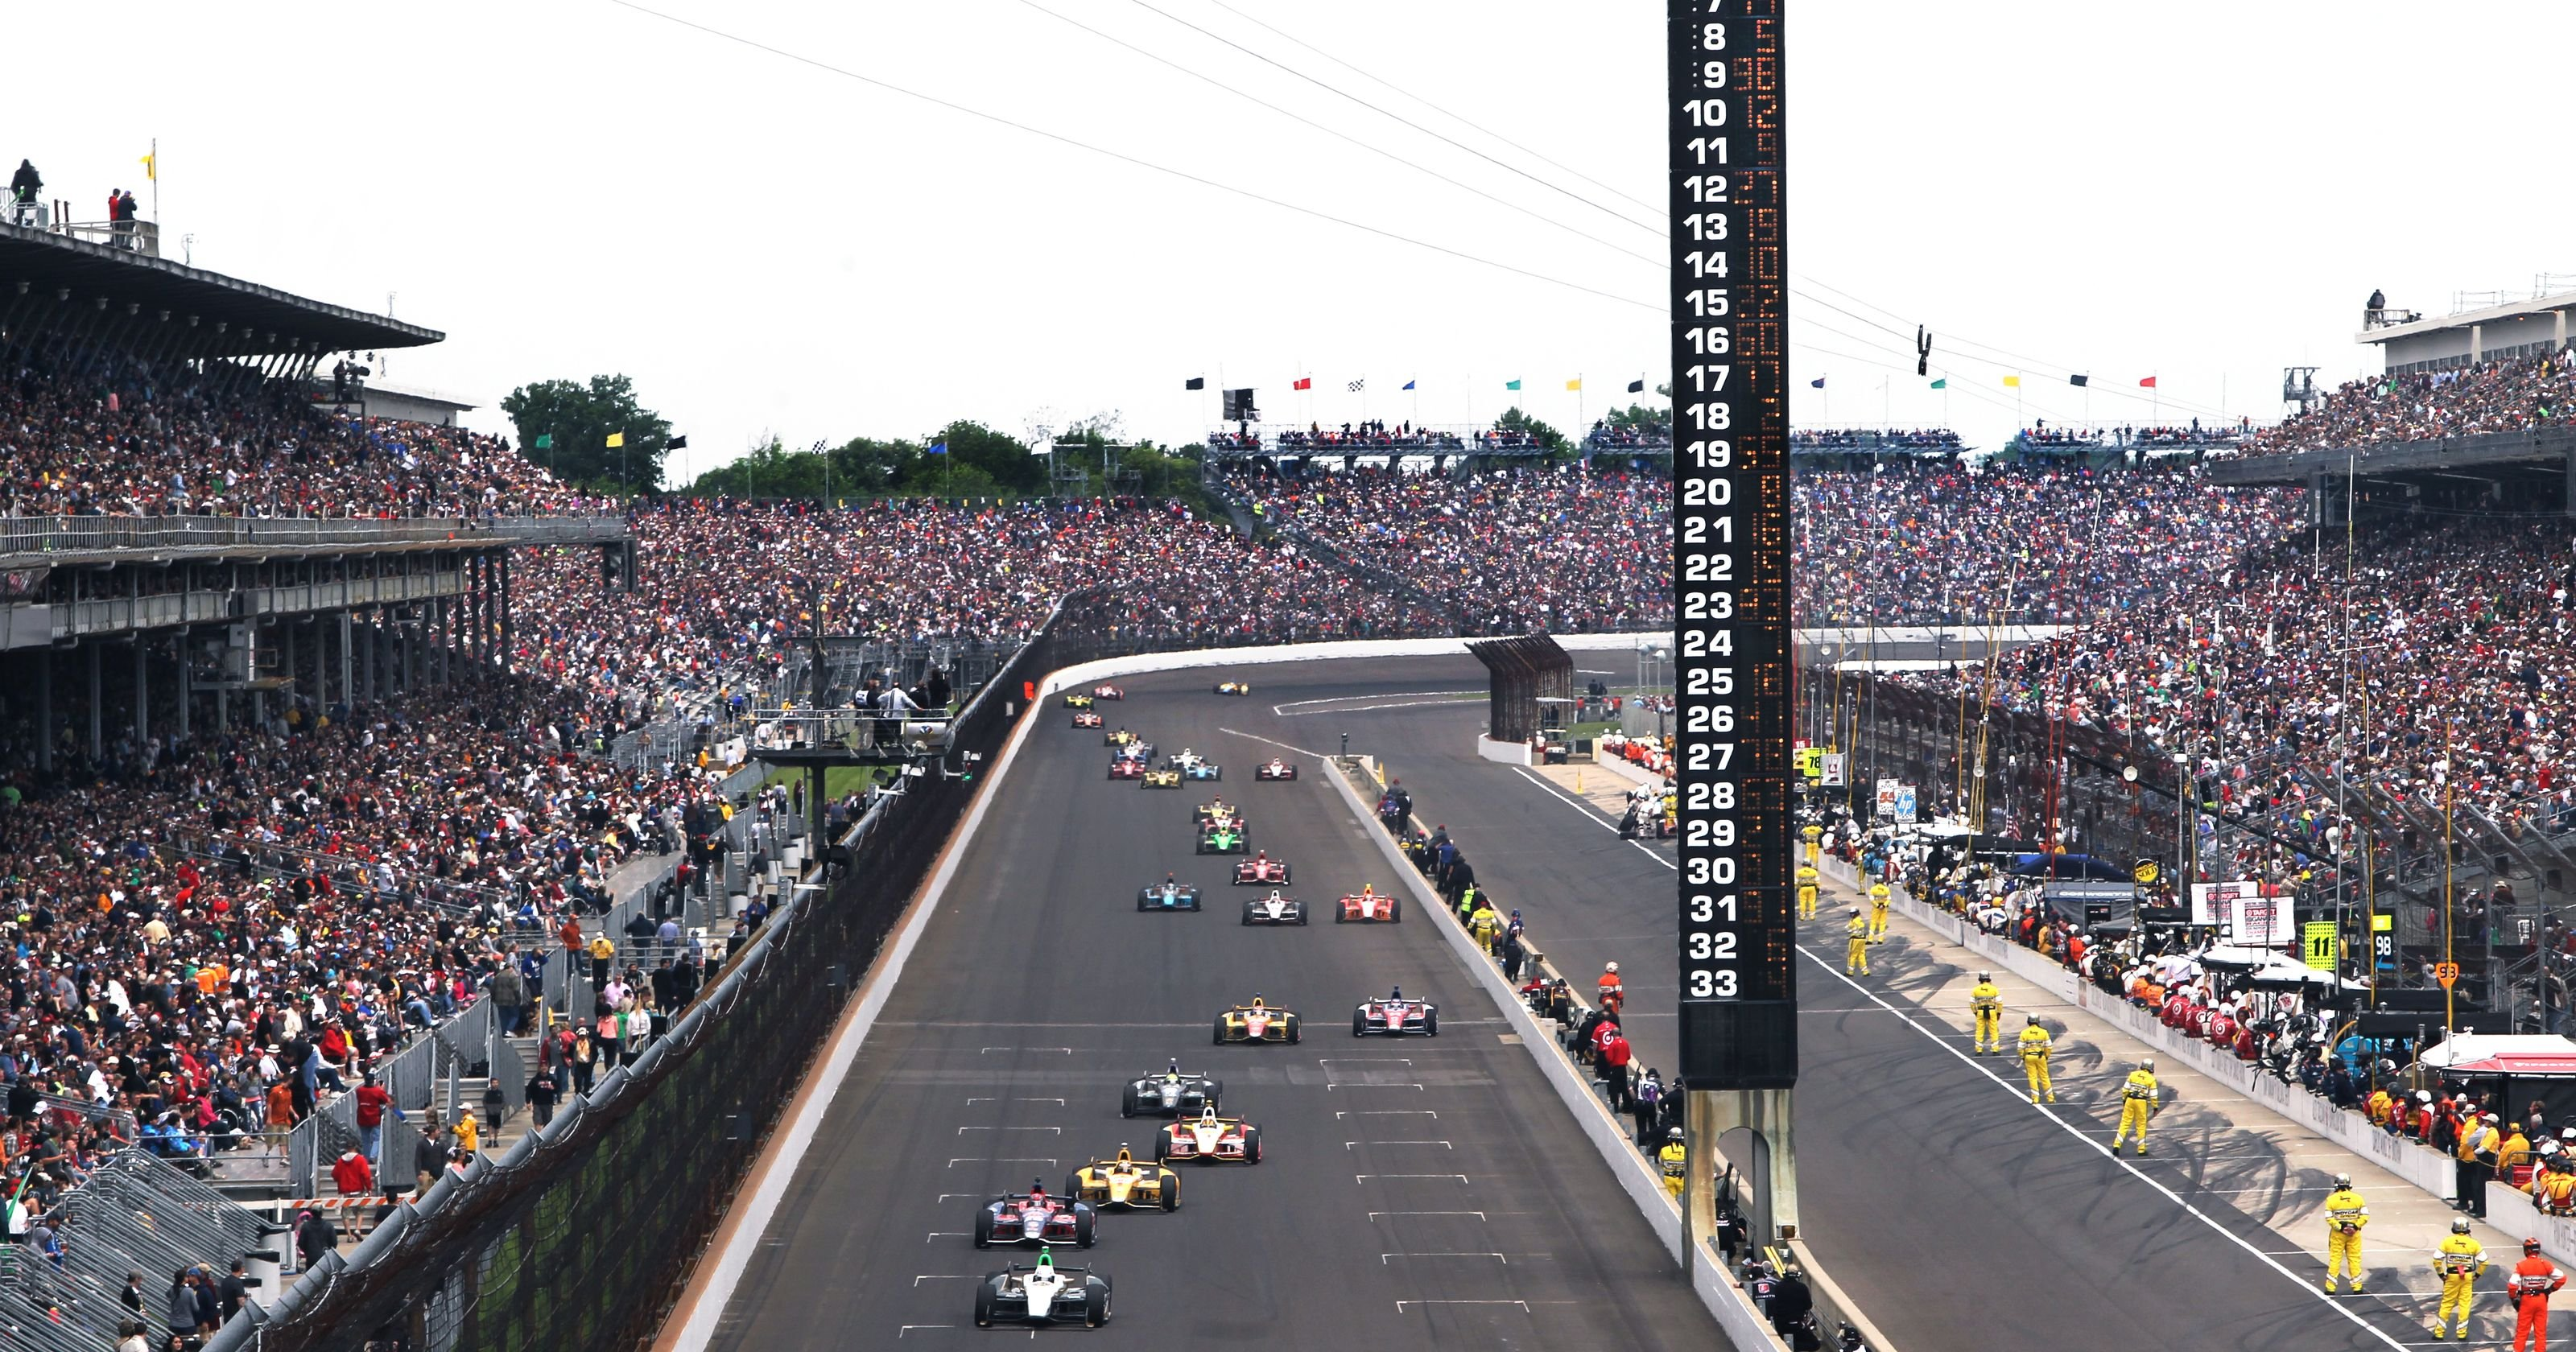 Indy race racing indycar indianapolis 500 d wallpaper 3200x1680 indy race racing indycar indianapolis 500 d wallpaper 3200x1680 709208 wallpaperup voltagebd Images